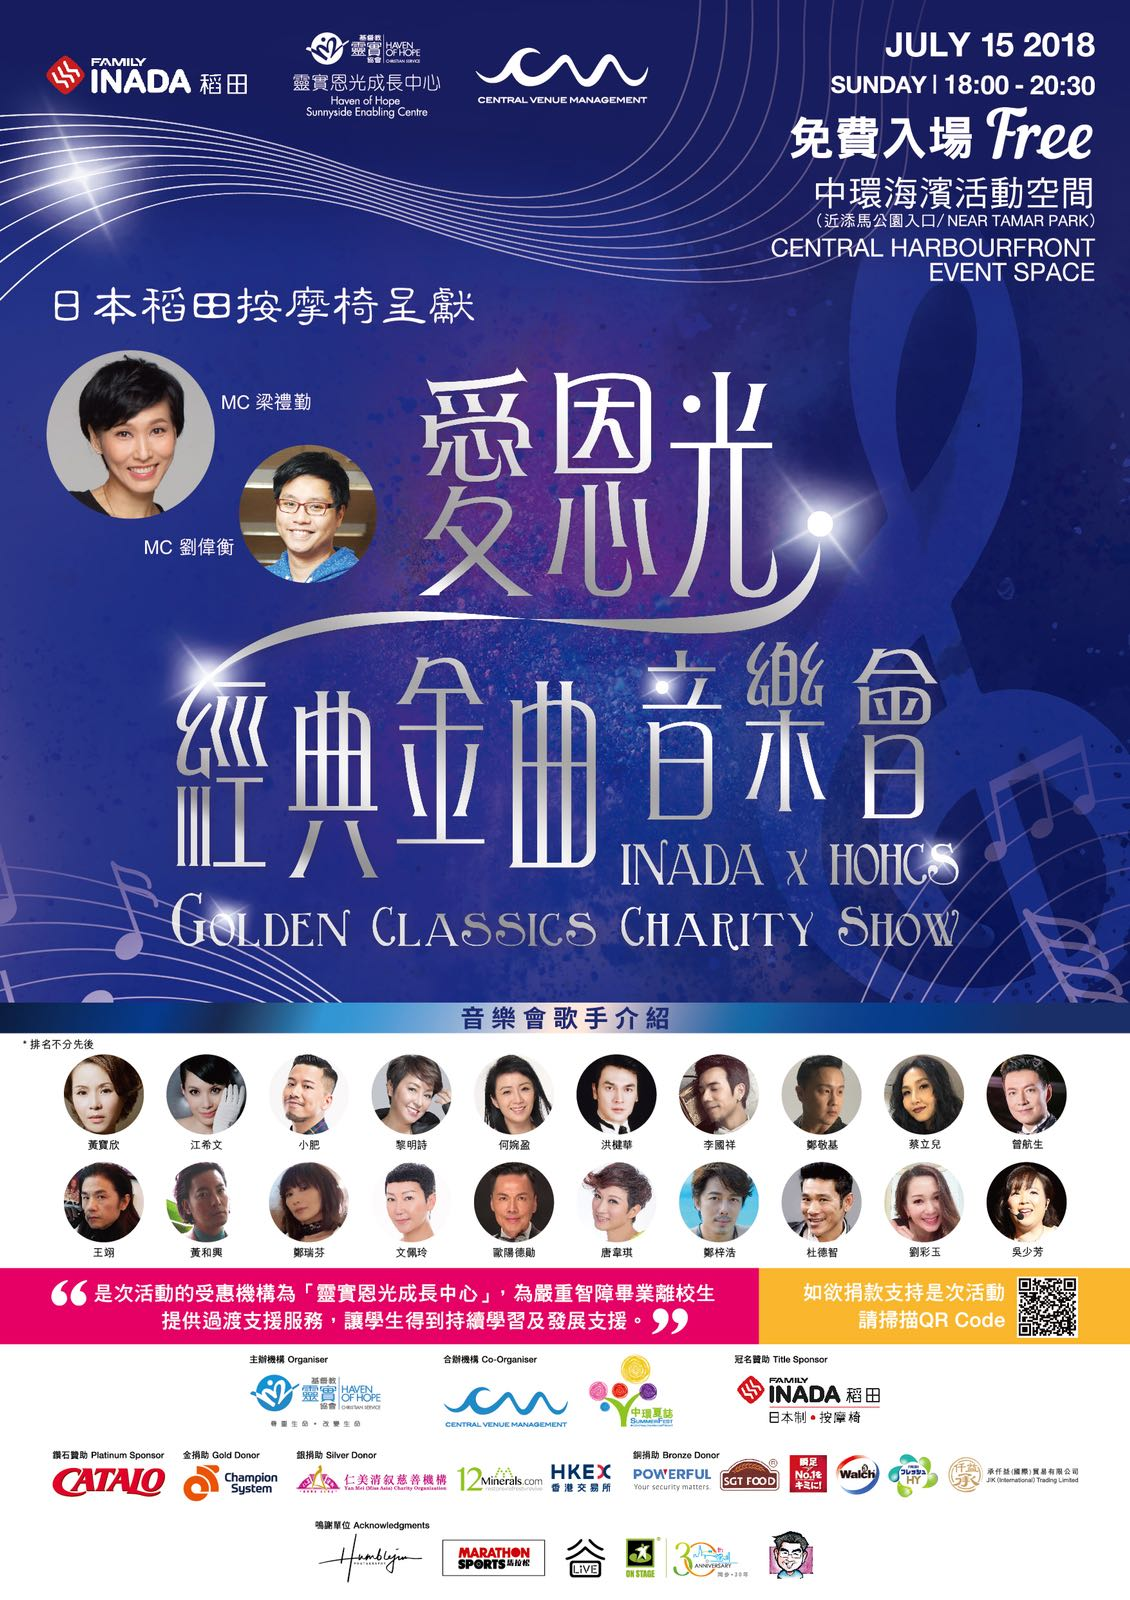 HOHCS_charity show_poster_15072018